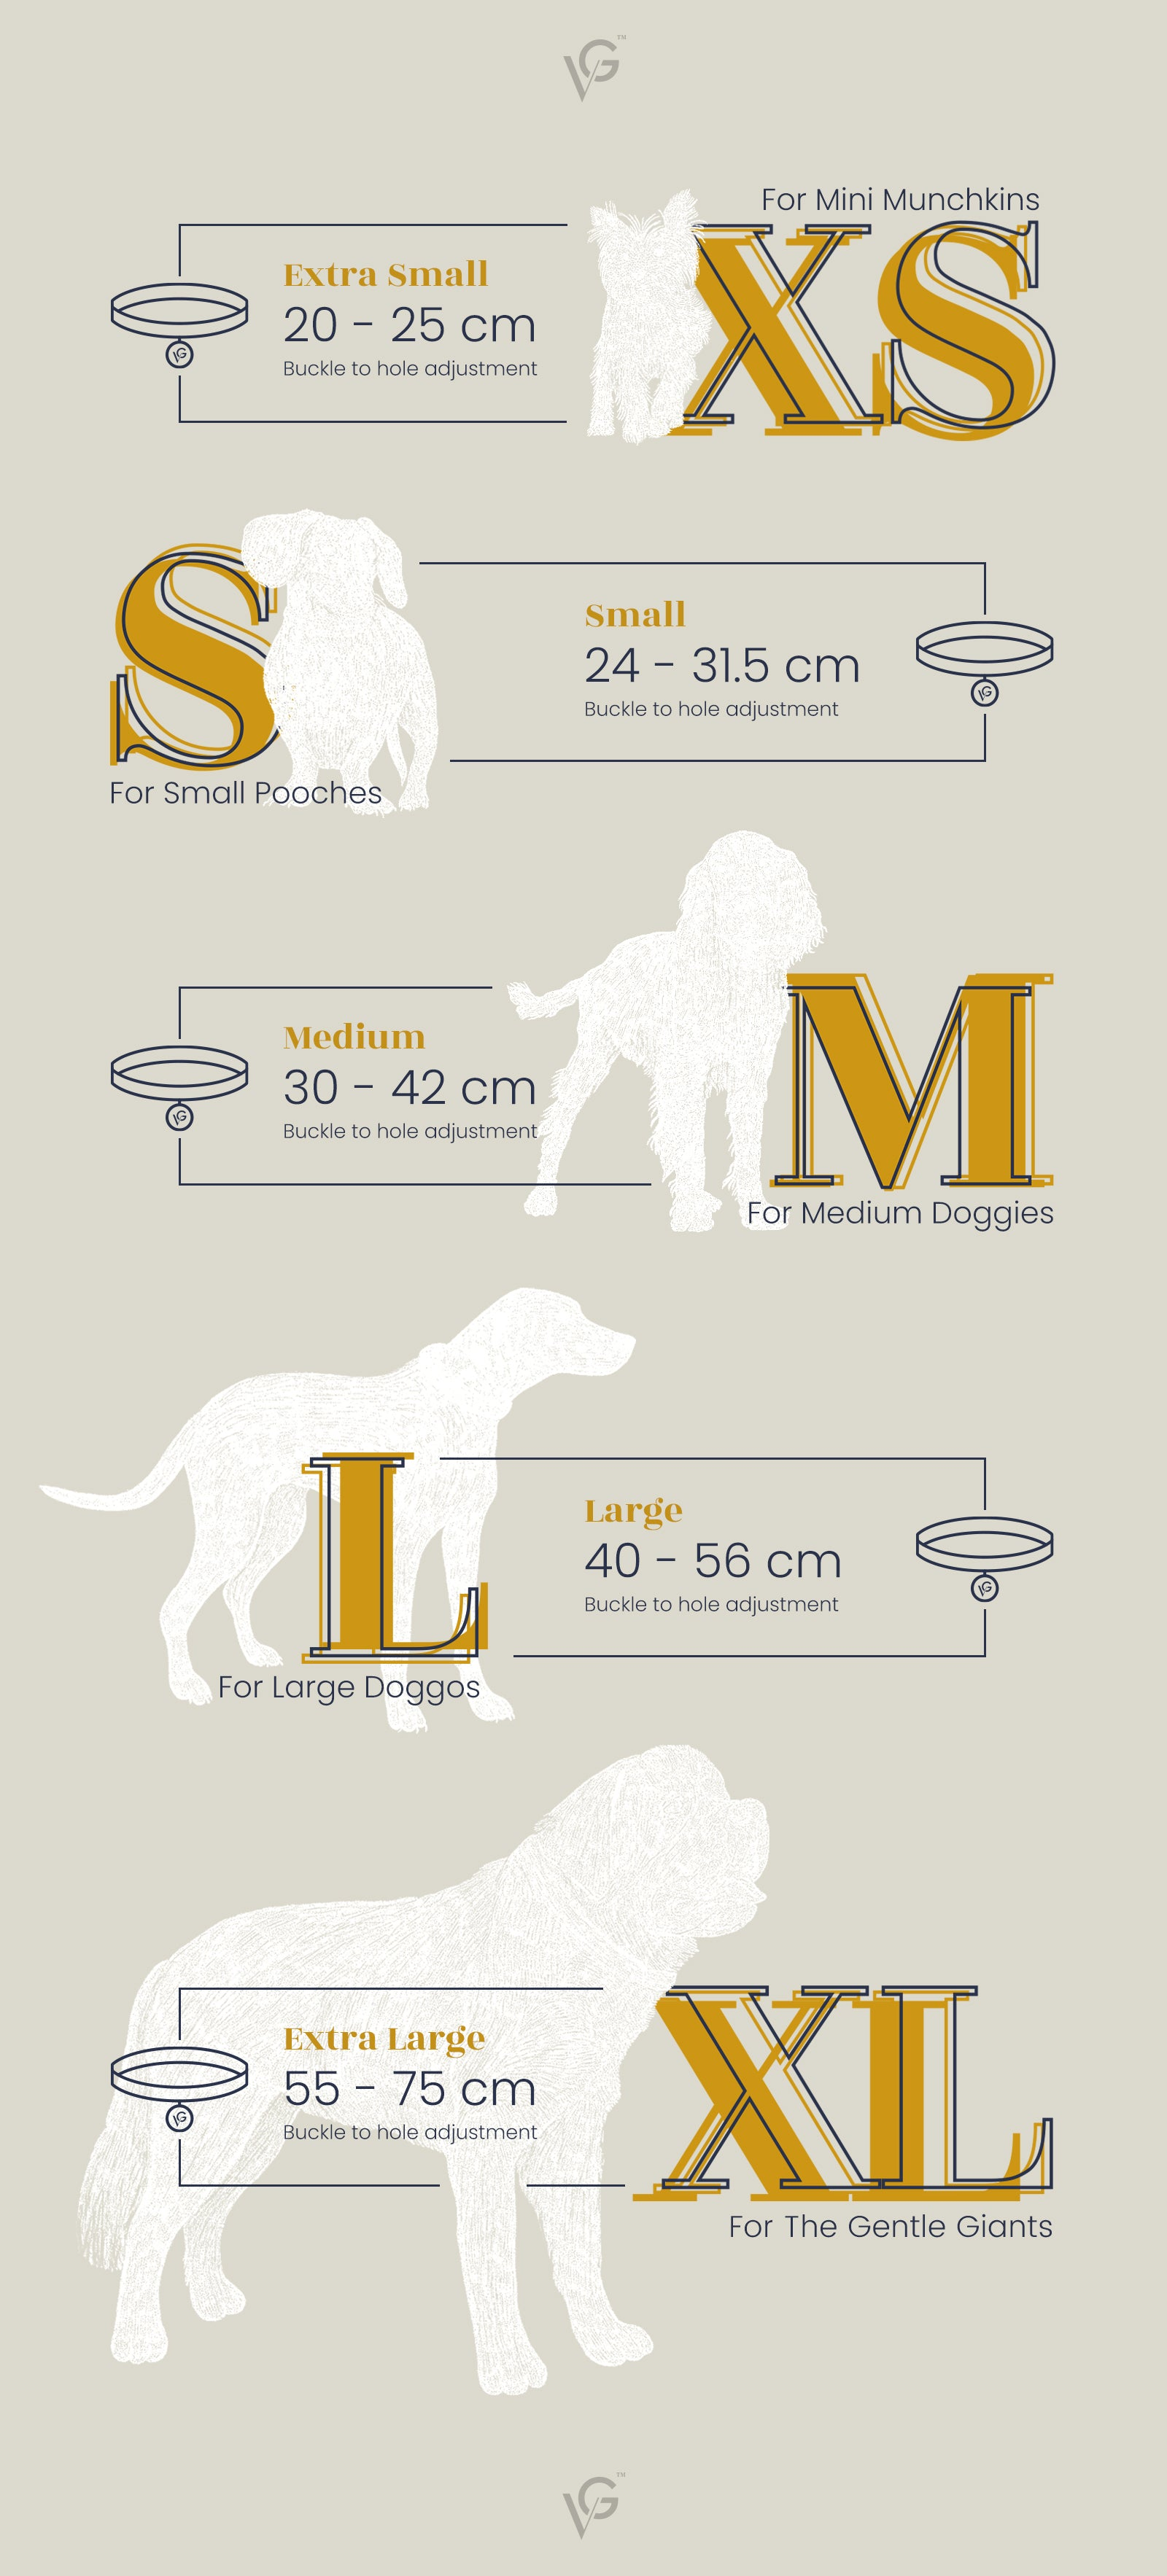 Valgray luxury dog accessory product sizing guide & sizing chart for extra large, large, medium, small and extra small dog collars. Image from The Valgray Collar Sizing Guide page.